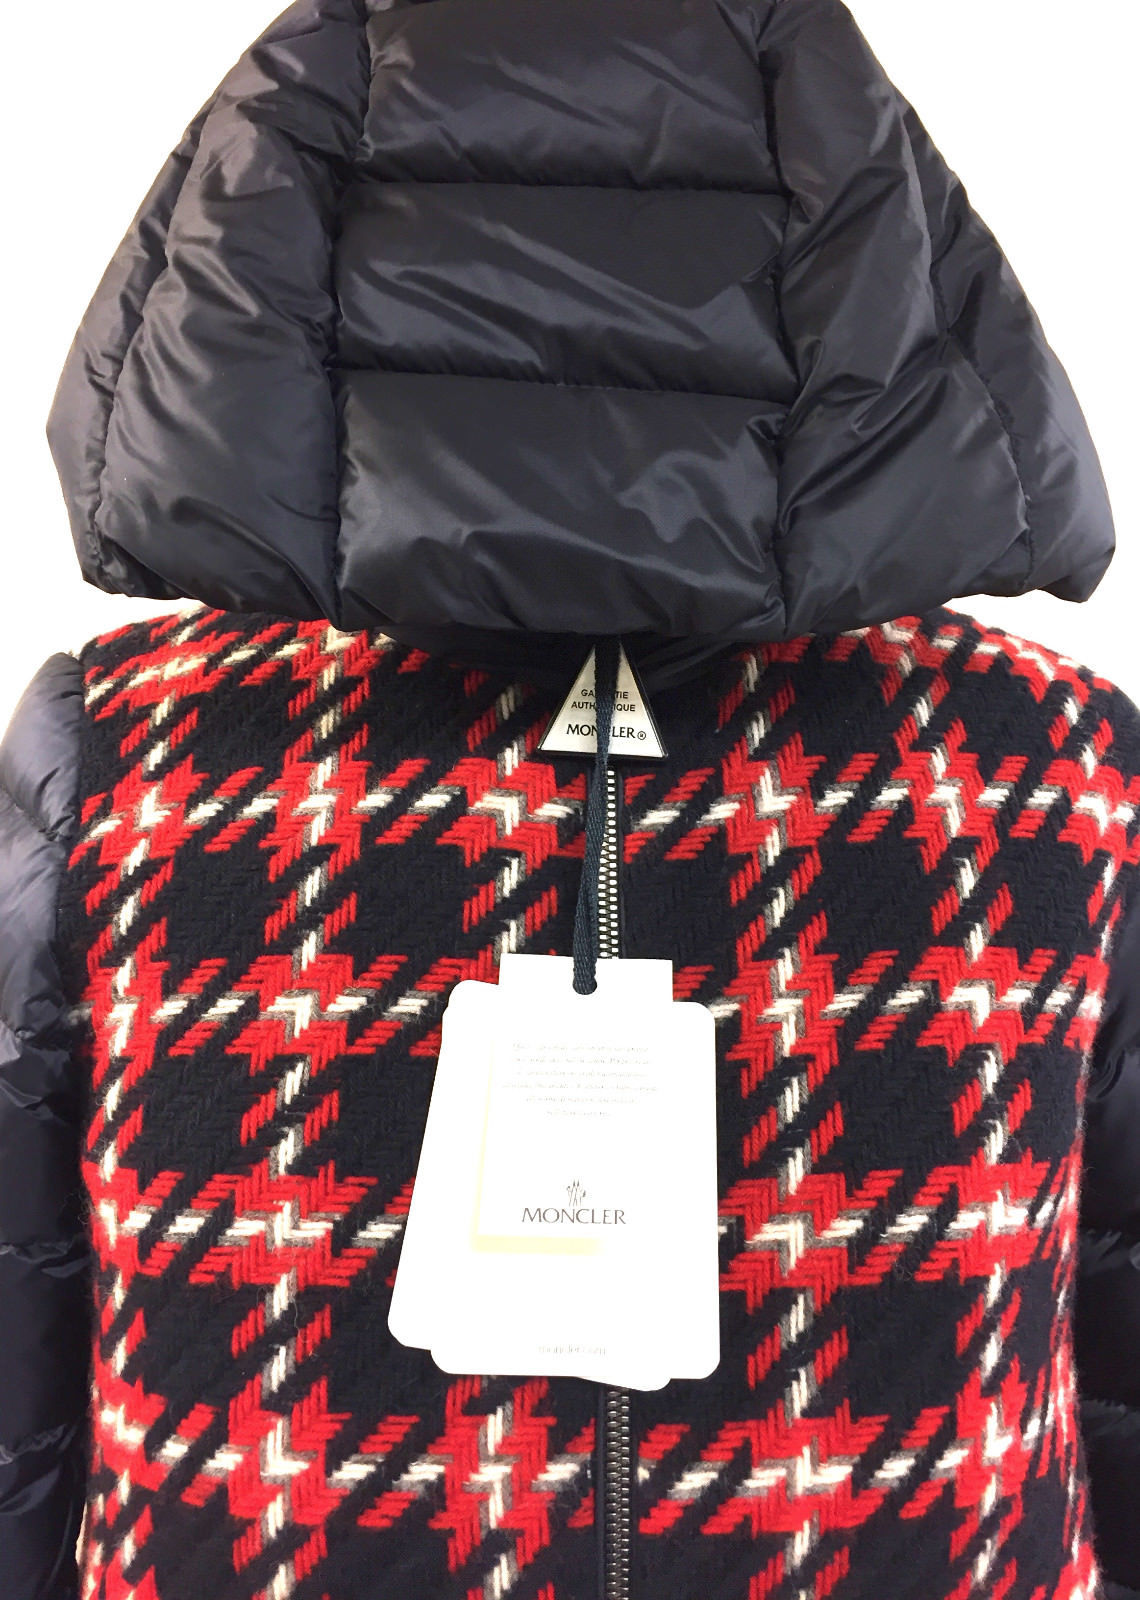 MONCLER   New with Tags Red White Blue Plaid Wool/Blue Down-Quilted Nylon CURIOSITE Girls' Winter Coat Jacket Size:  12 Years